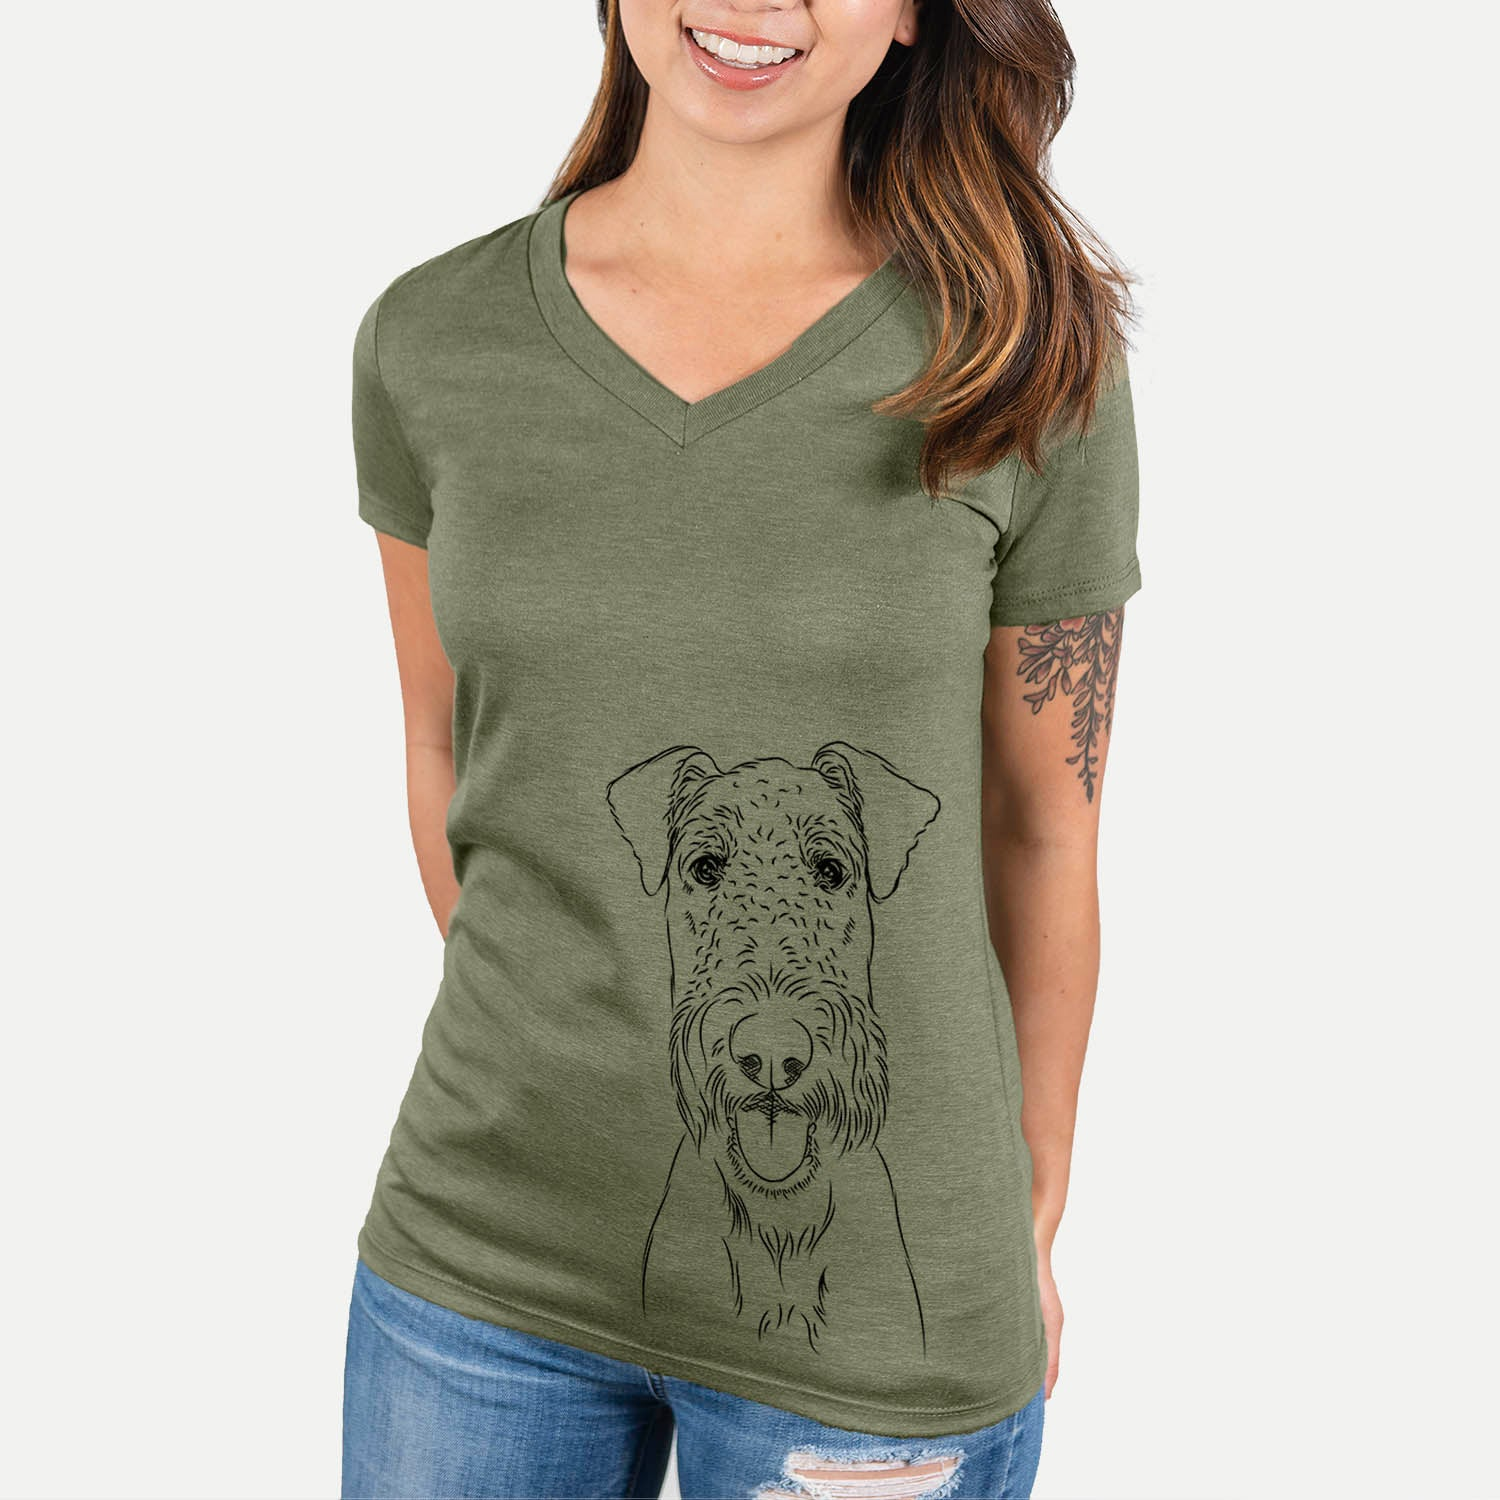 Andy the Airedale Terrier - Women's Modern Fit V-neck Shirt